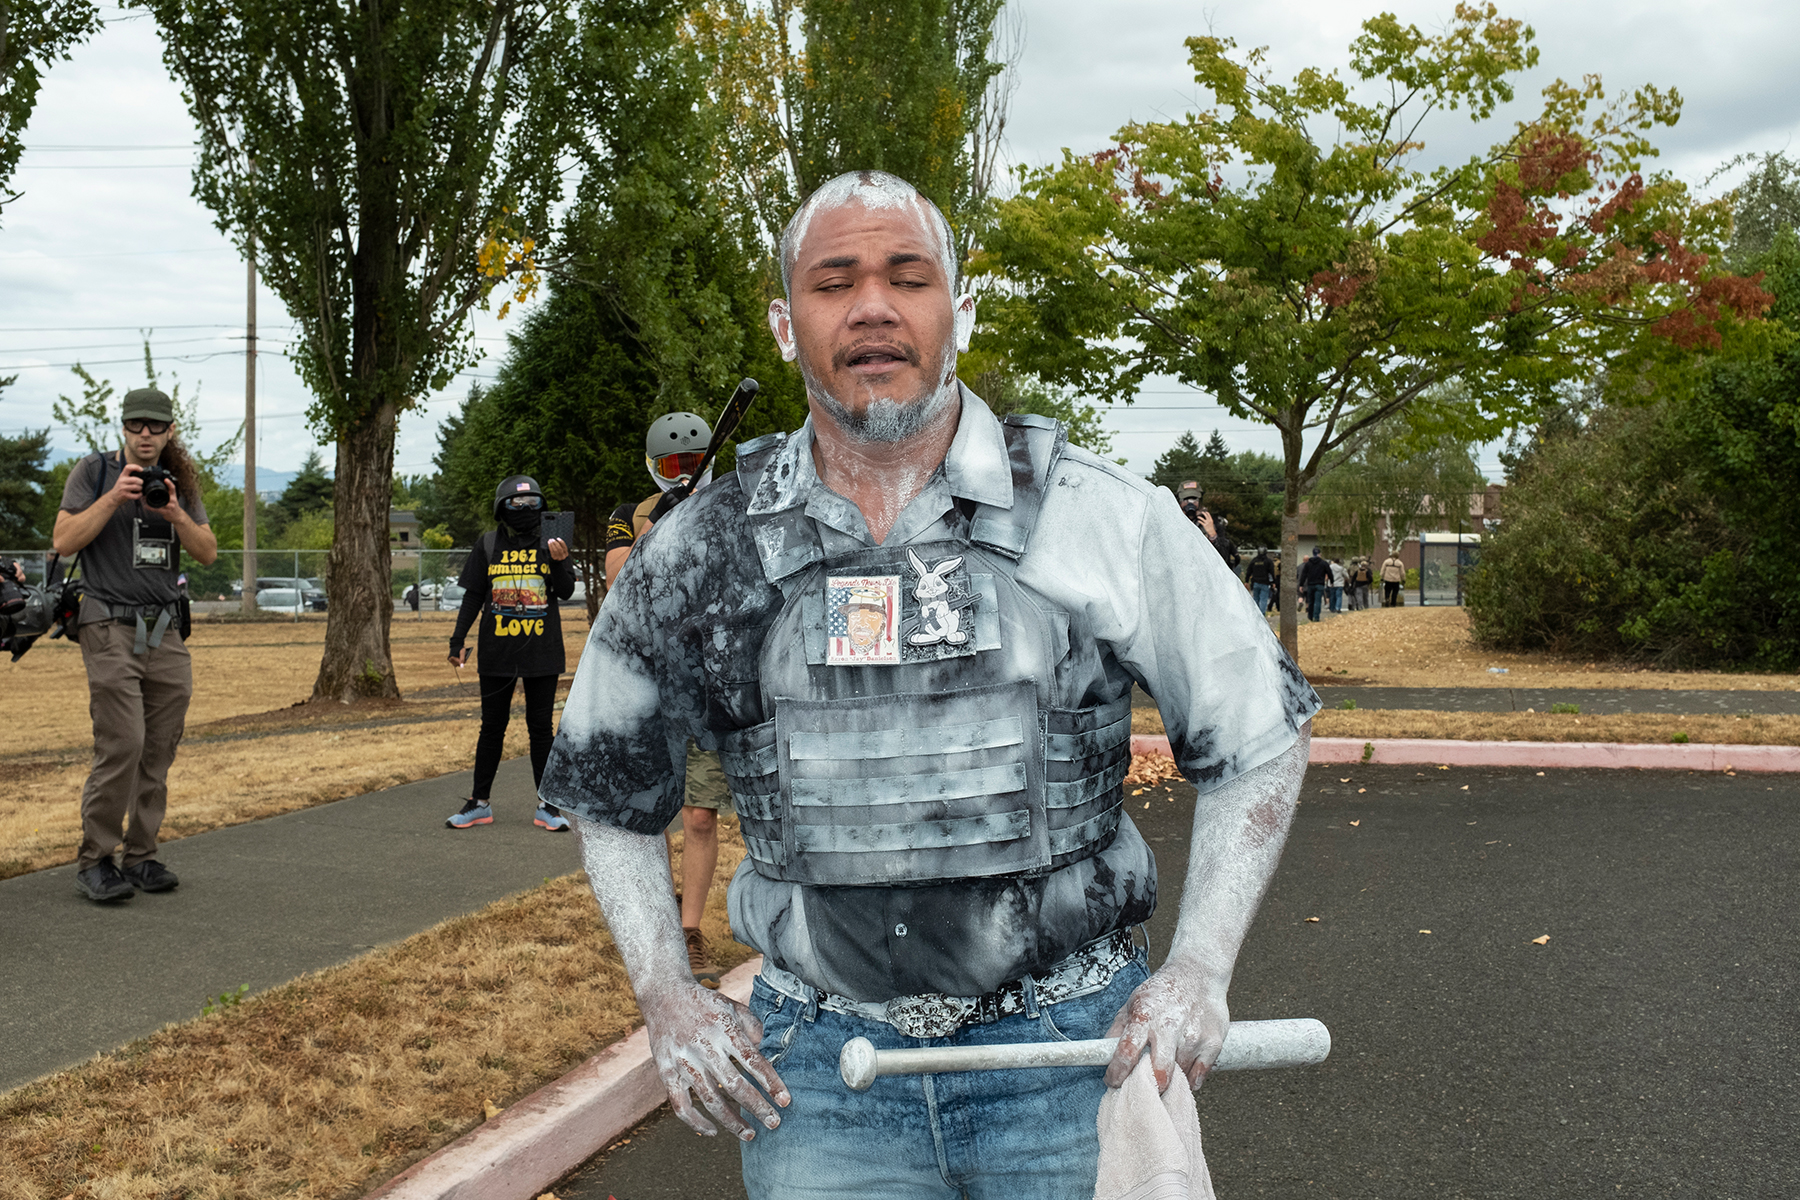 """Far-right activist Tusitala """"Tiny"""" Toese recovers from a battle with antifascist counter-protesters at a Proud Boys rally in Portland, Ore., August 22, 2021."""